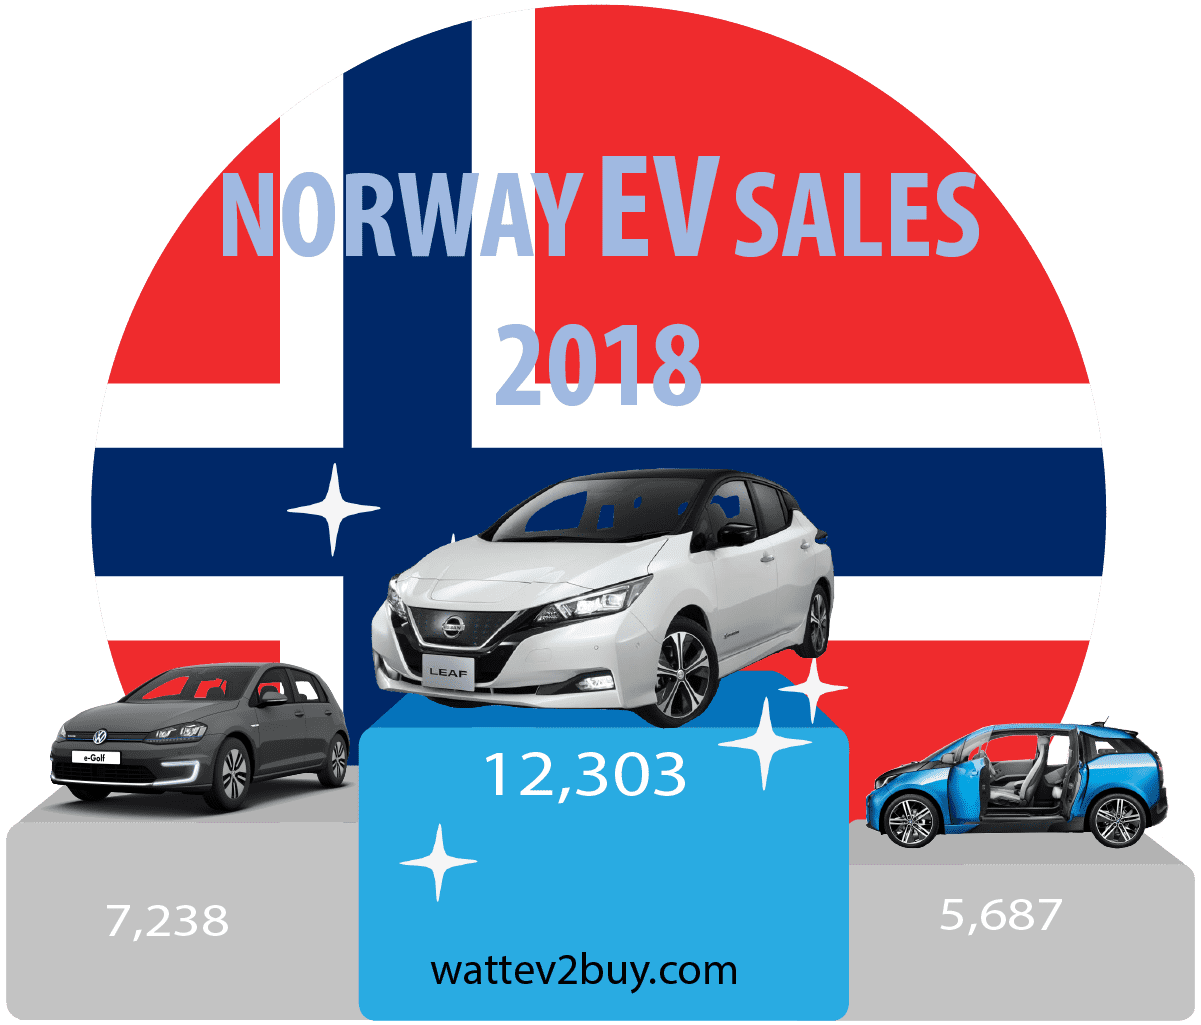 Norway-ev-sales-december-2018-ytd